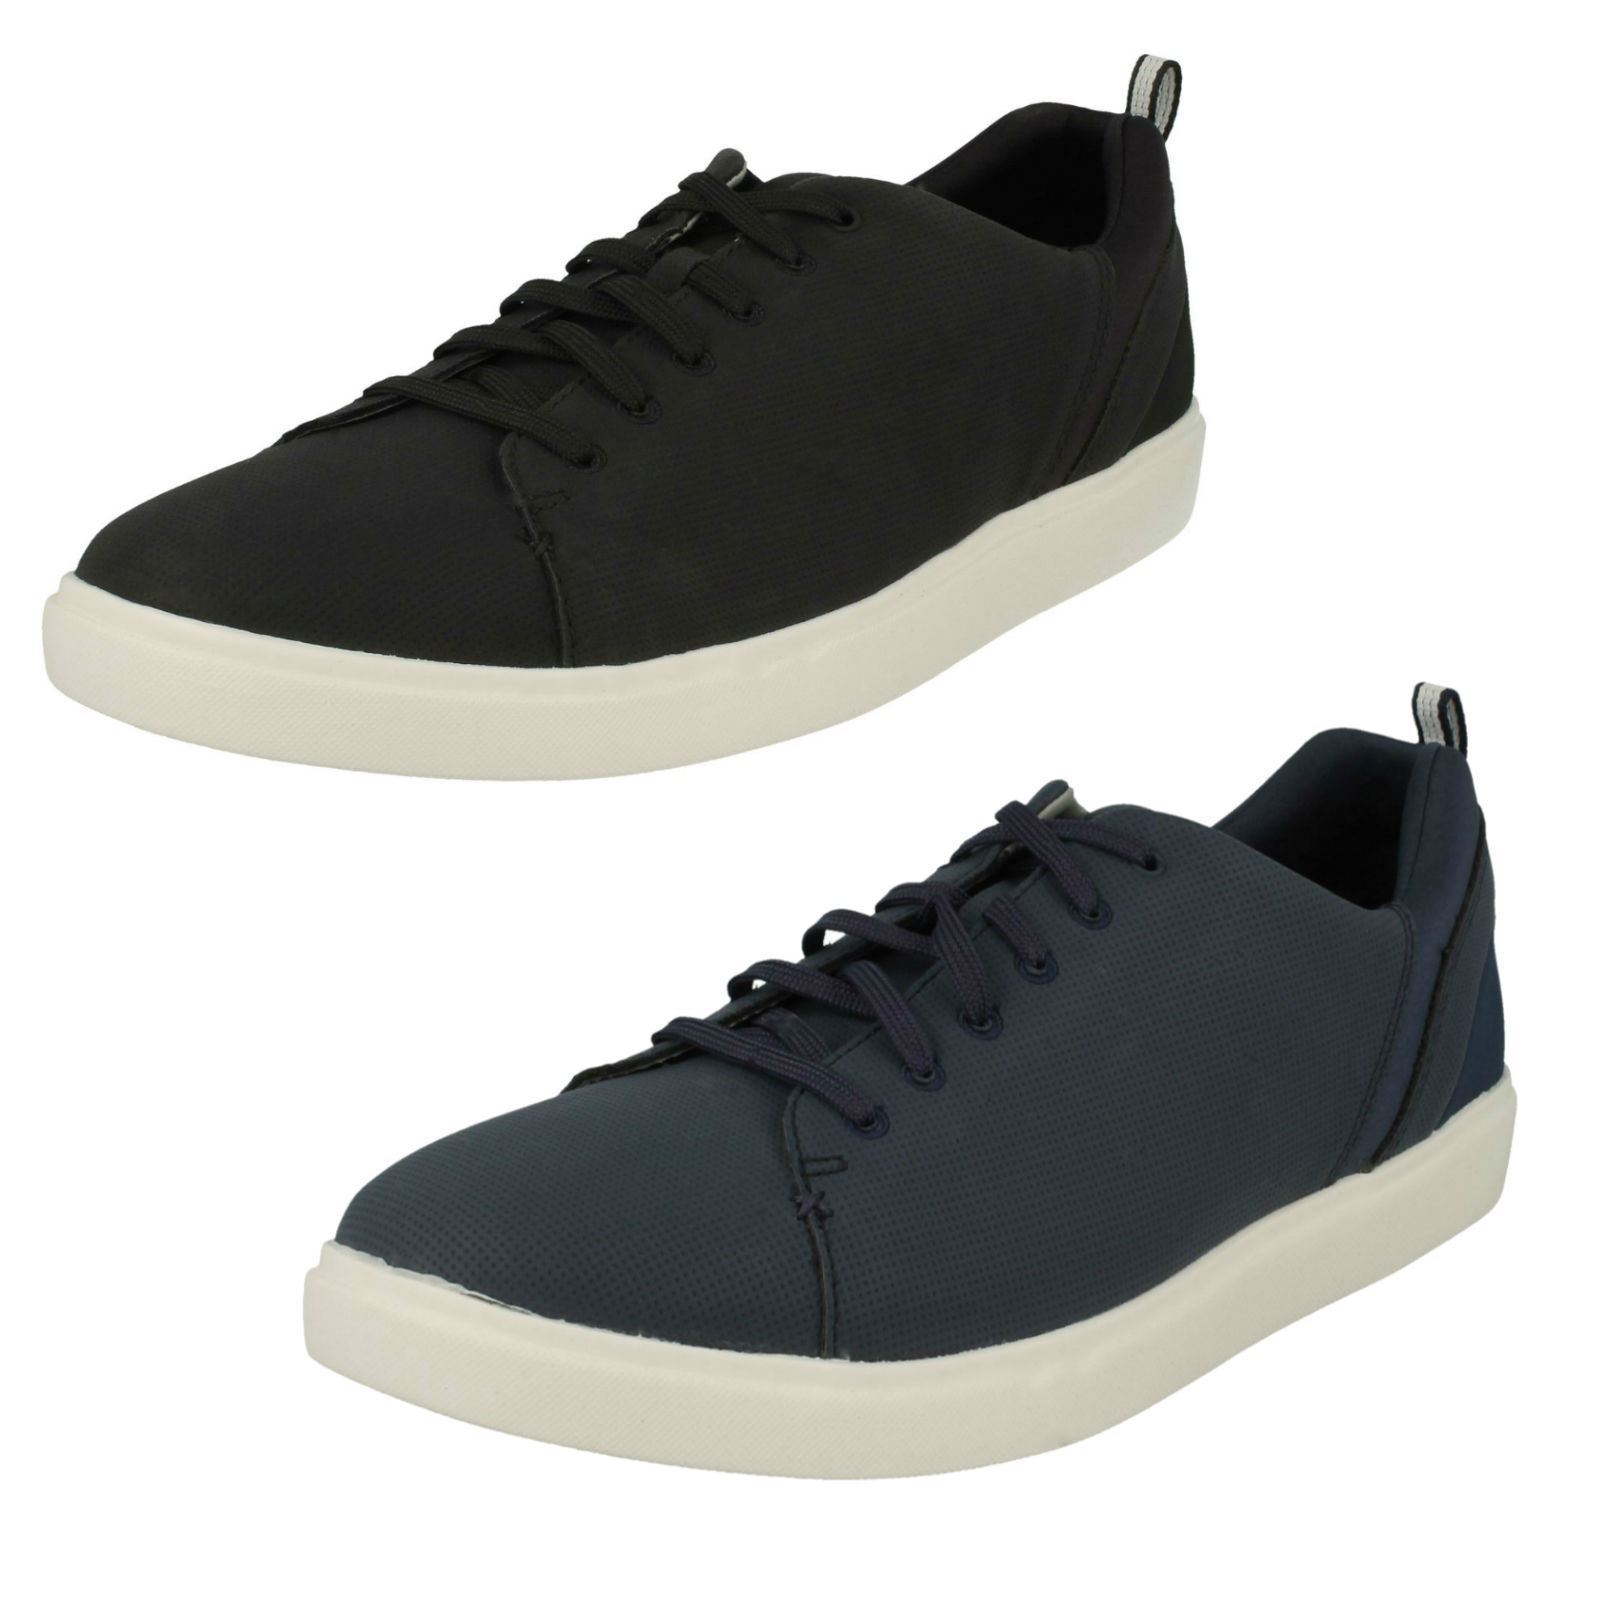 Mens Clarks Casual Lace Up Trainer Style Shoes - Step Verve Lo